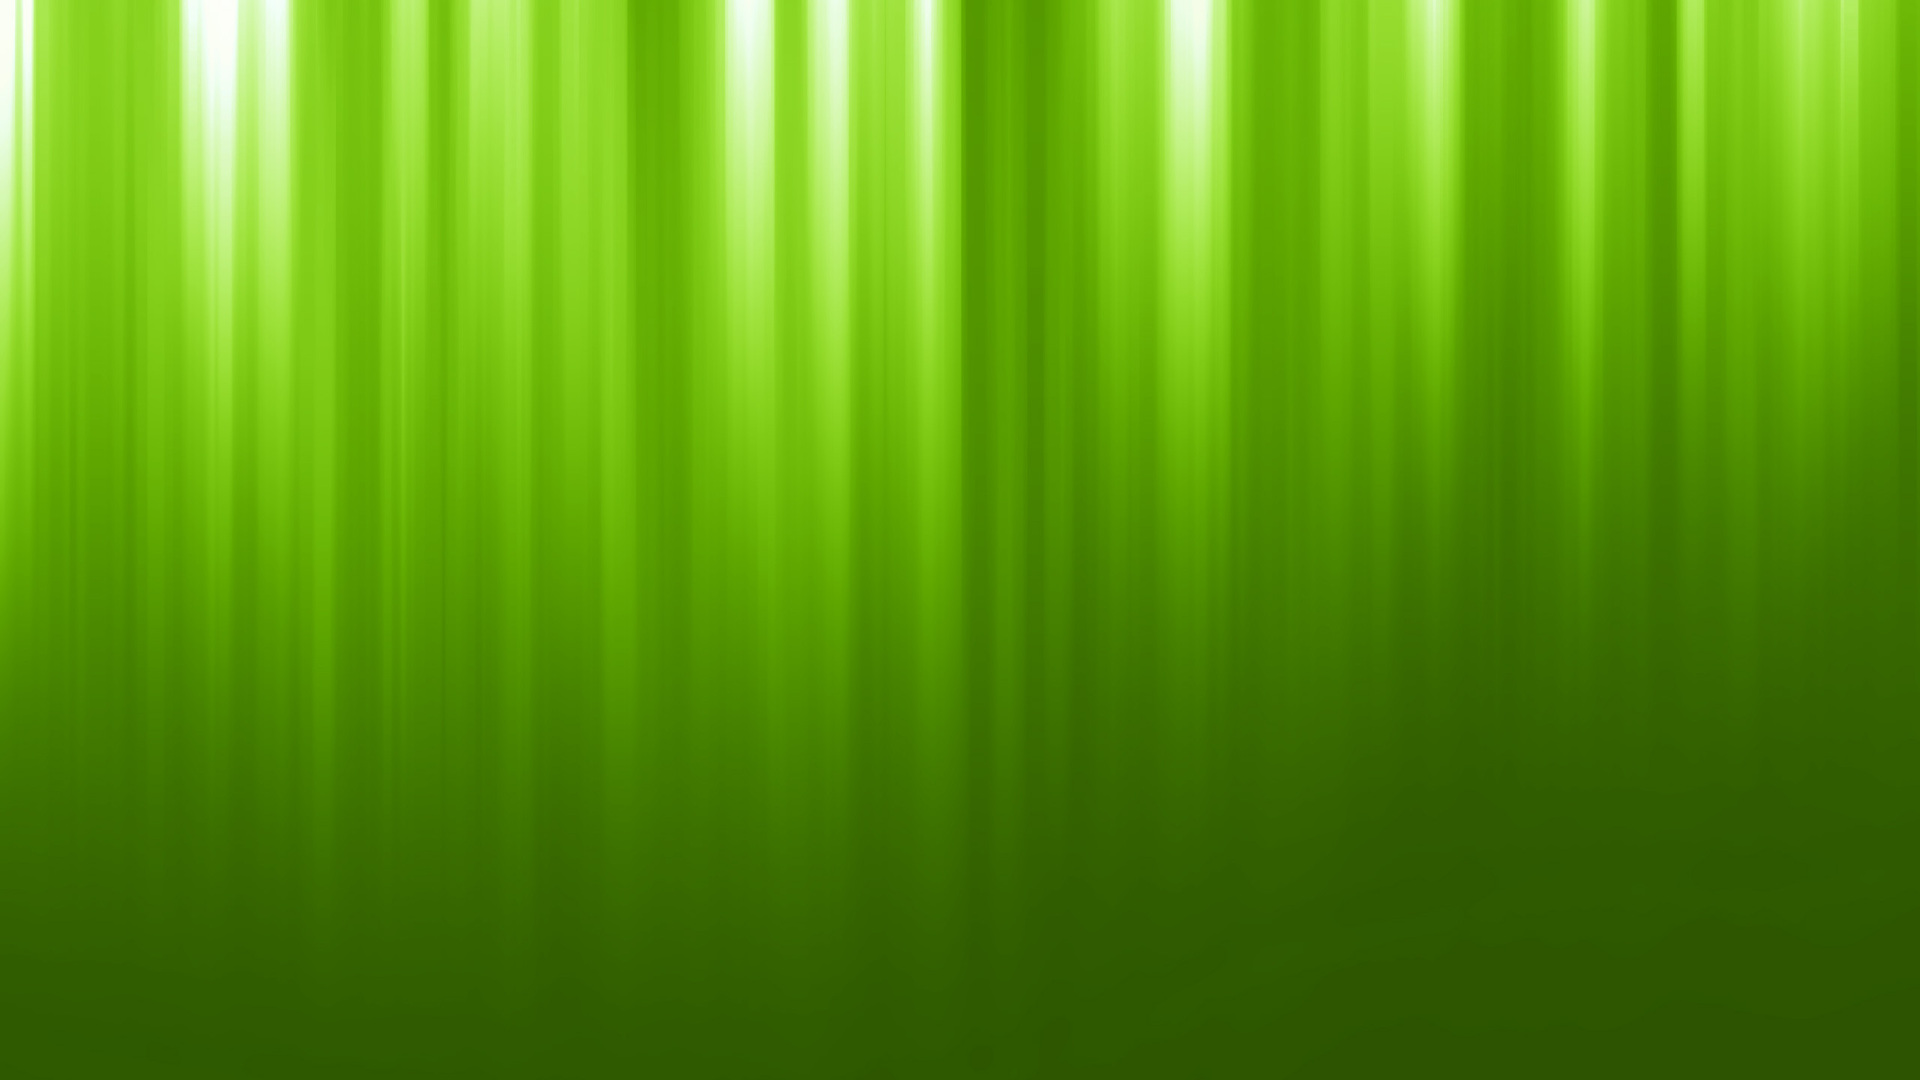 Hd wallpaper green - Green Wallpaper 1 Green Wallpaper 2 Green Wallpaper 2